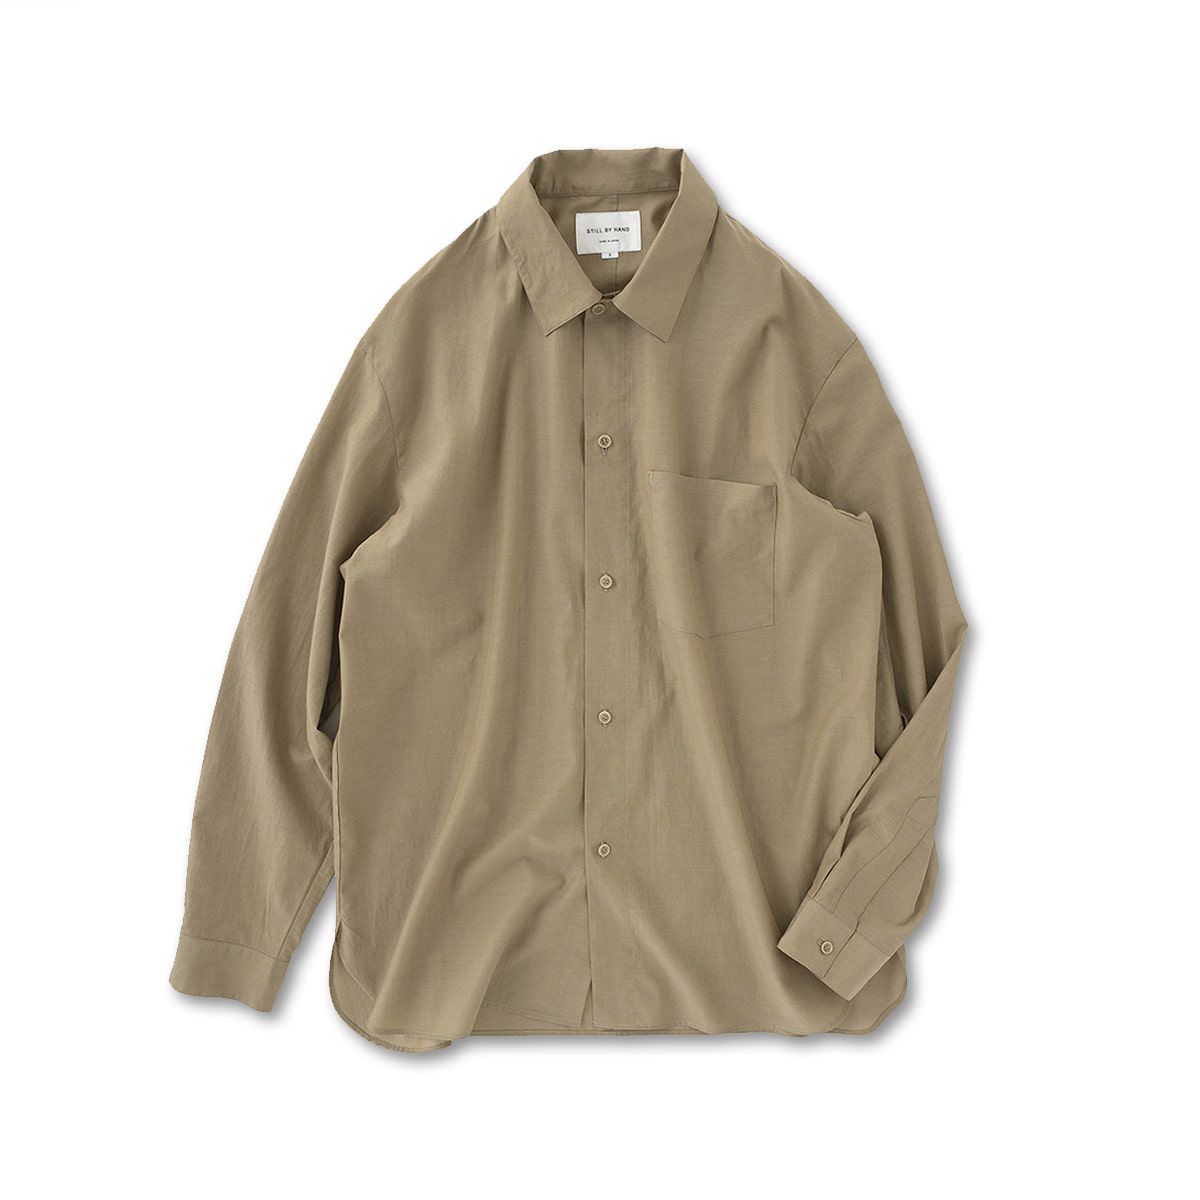 [STILL BY HAND] SH02201OS - RELAXED OVER SHIRT 'BEIGE'